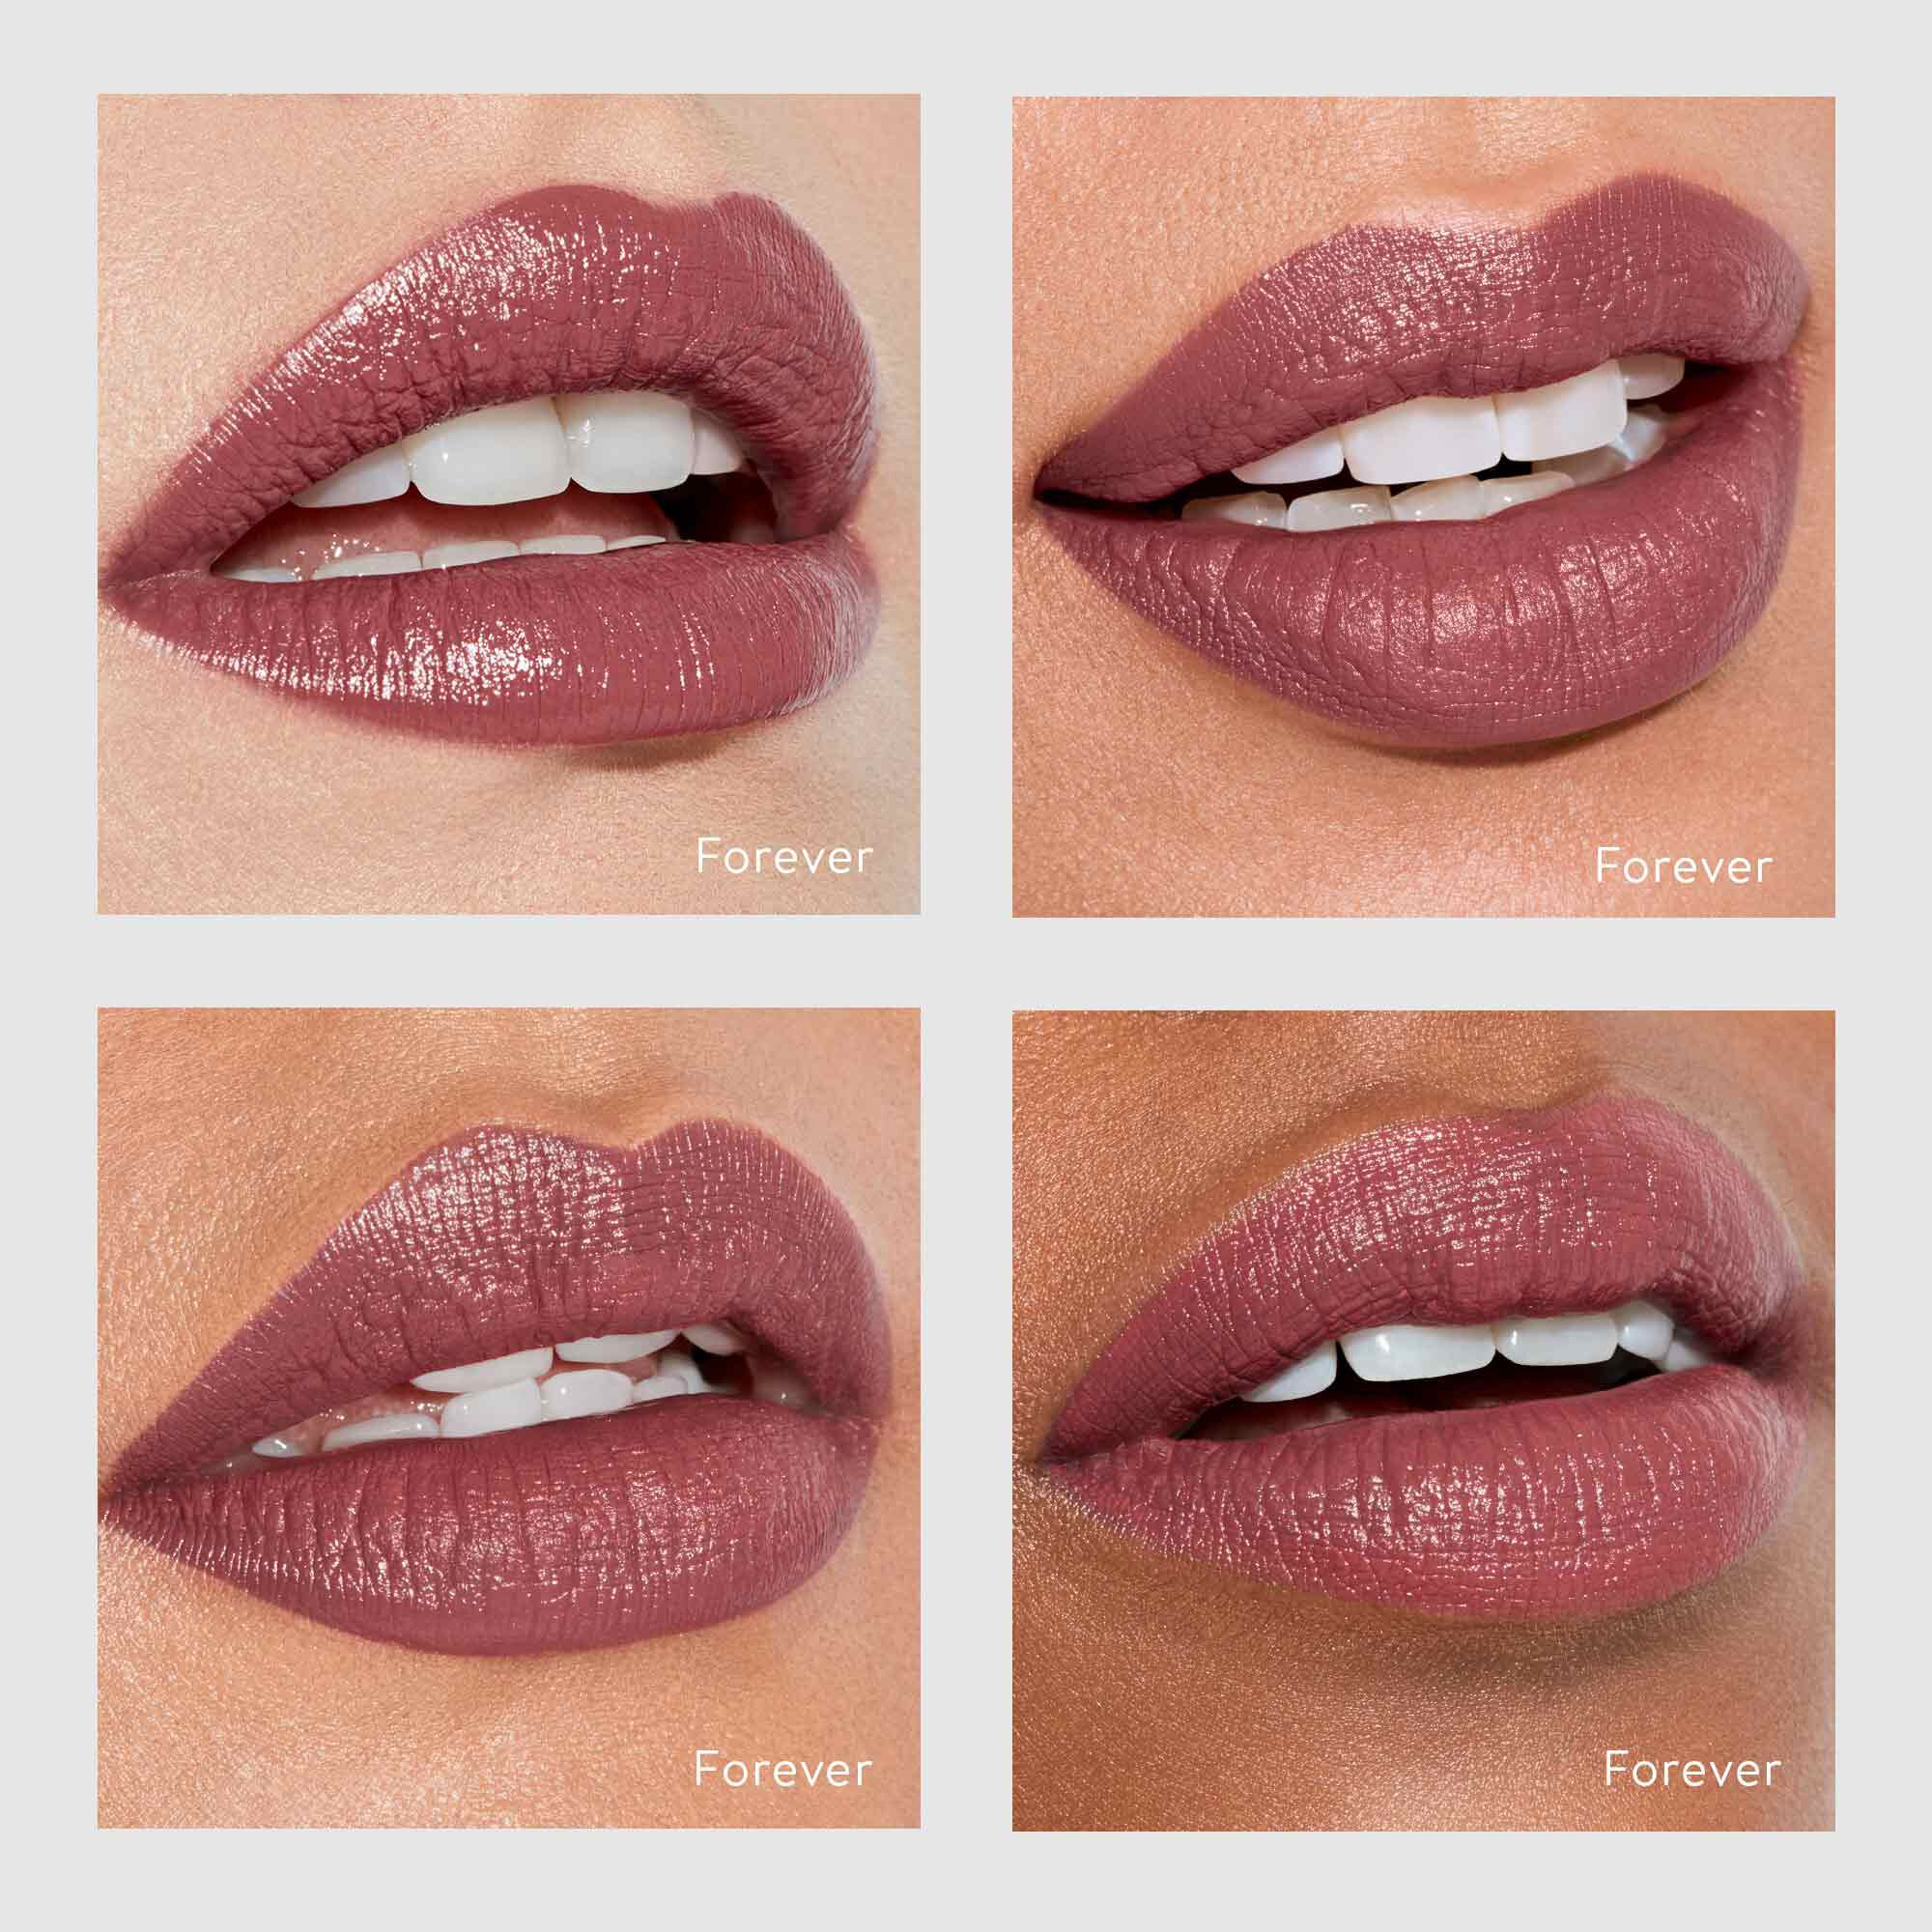 forever lipstick on four different skin shades